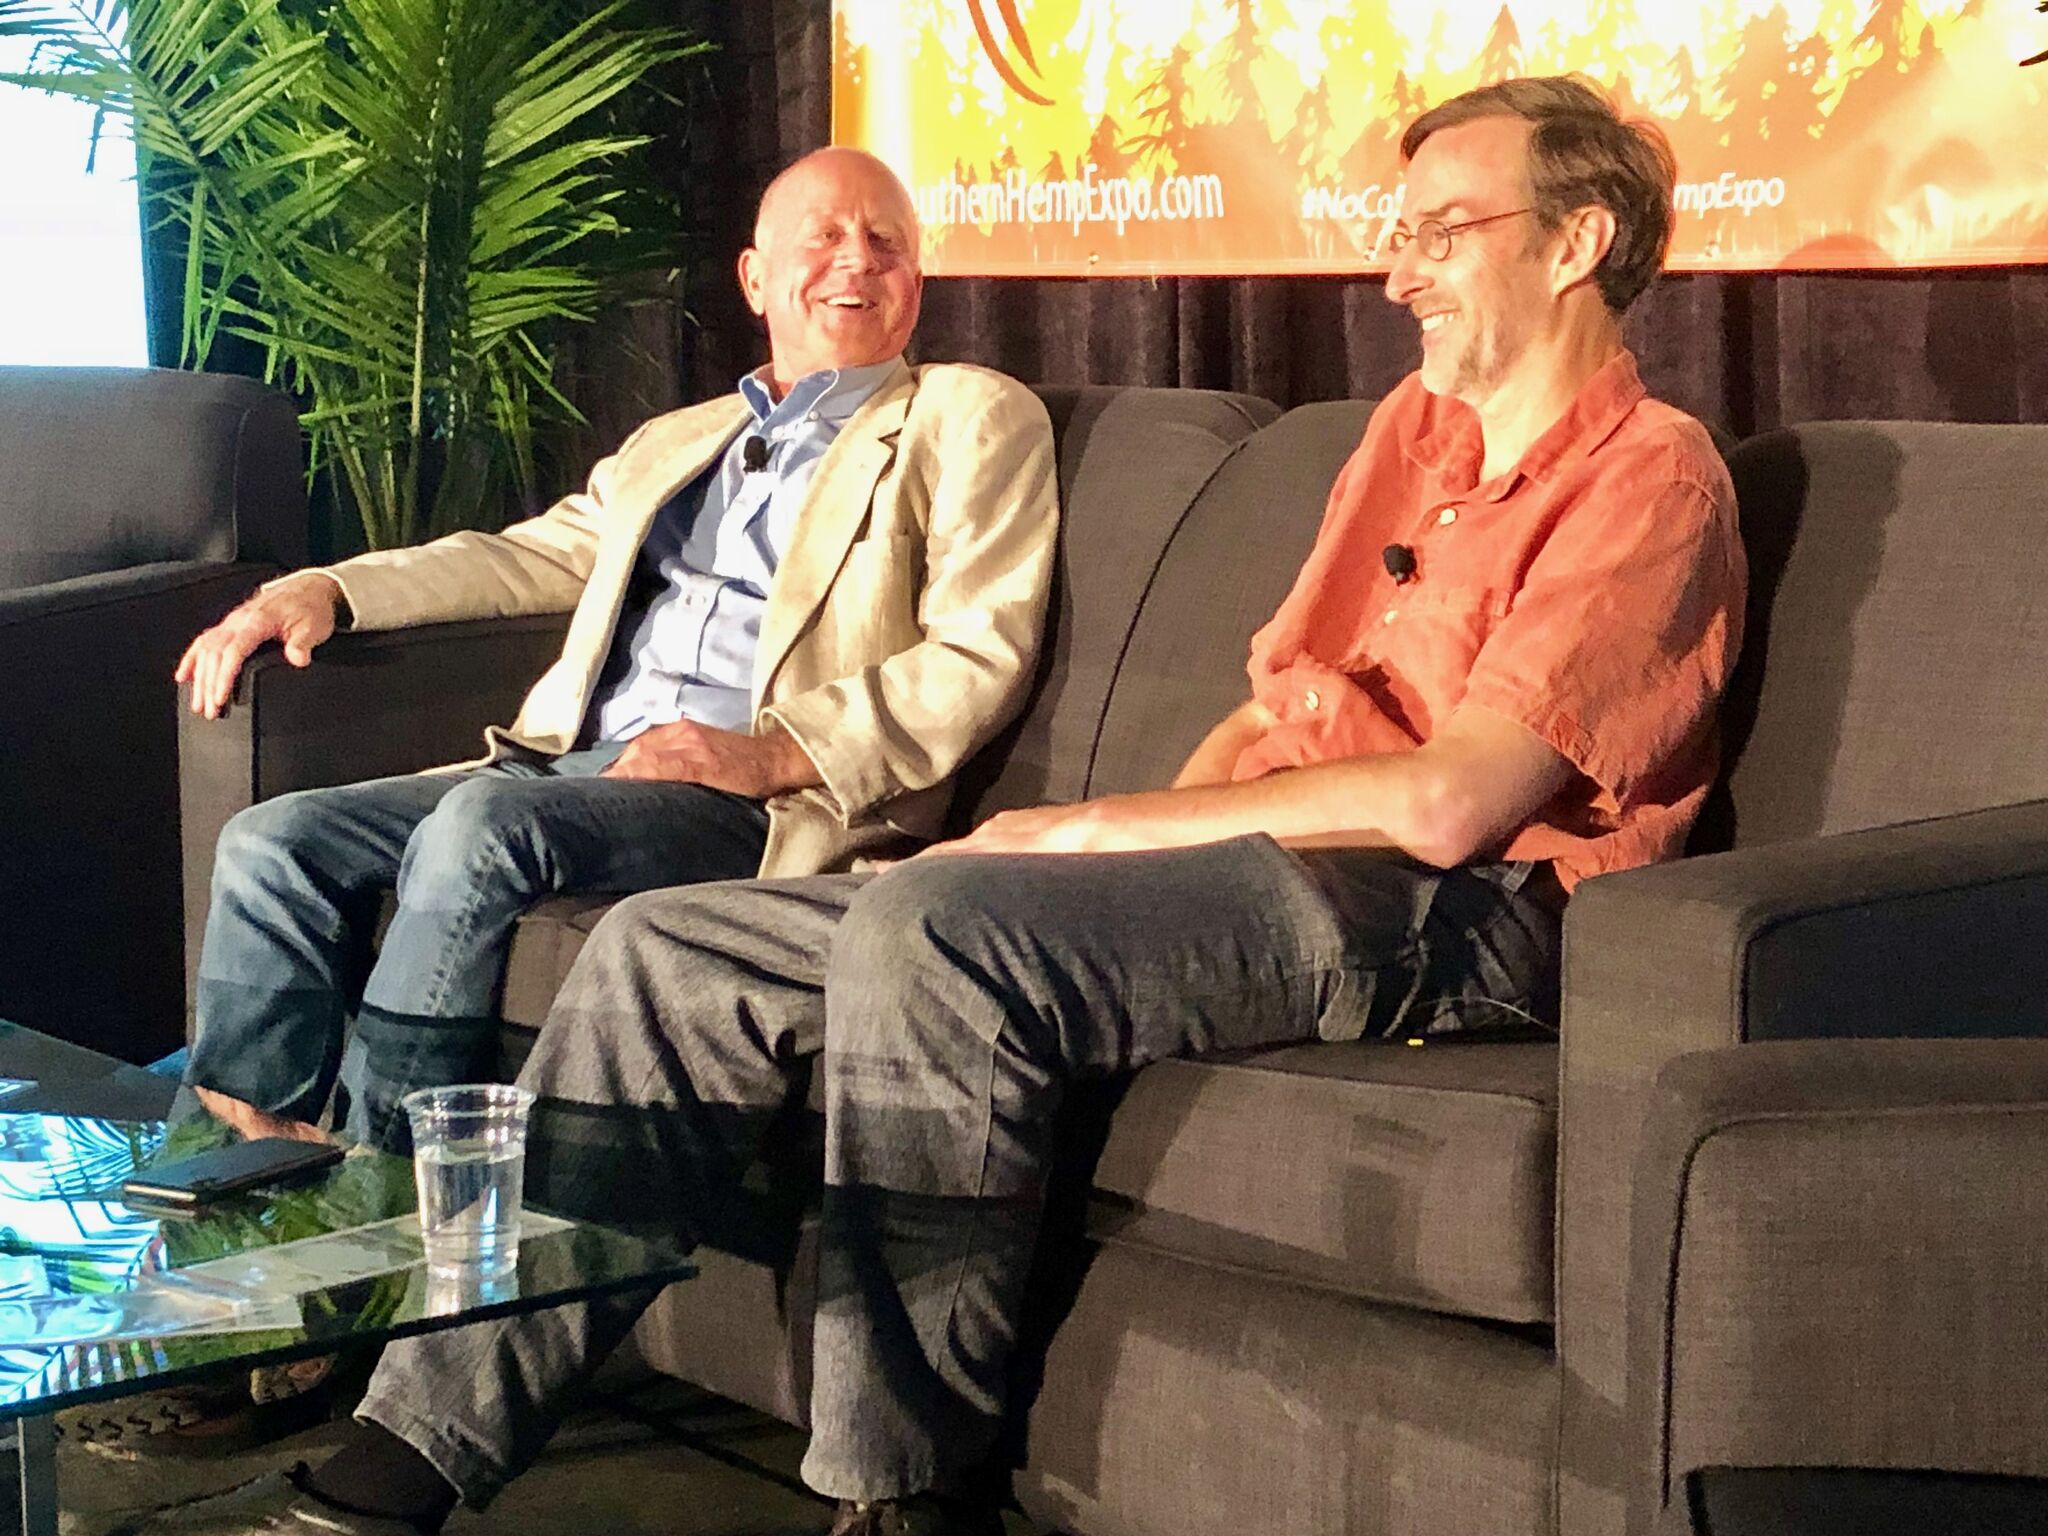 Pioneering hemp farmer Joe Hickey and John Roulac, founder of Nutiva and Re: Botanicals, share a laugh on stage at the Southern Hemp Expo Business Conference.